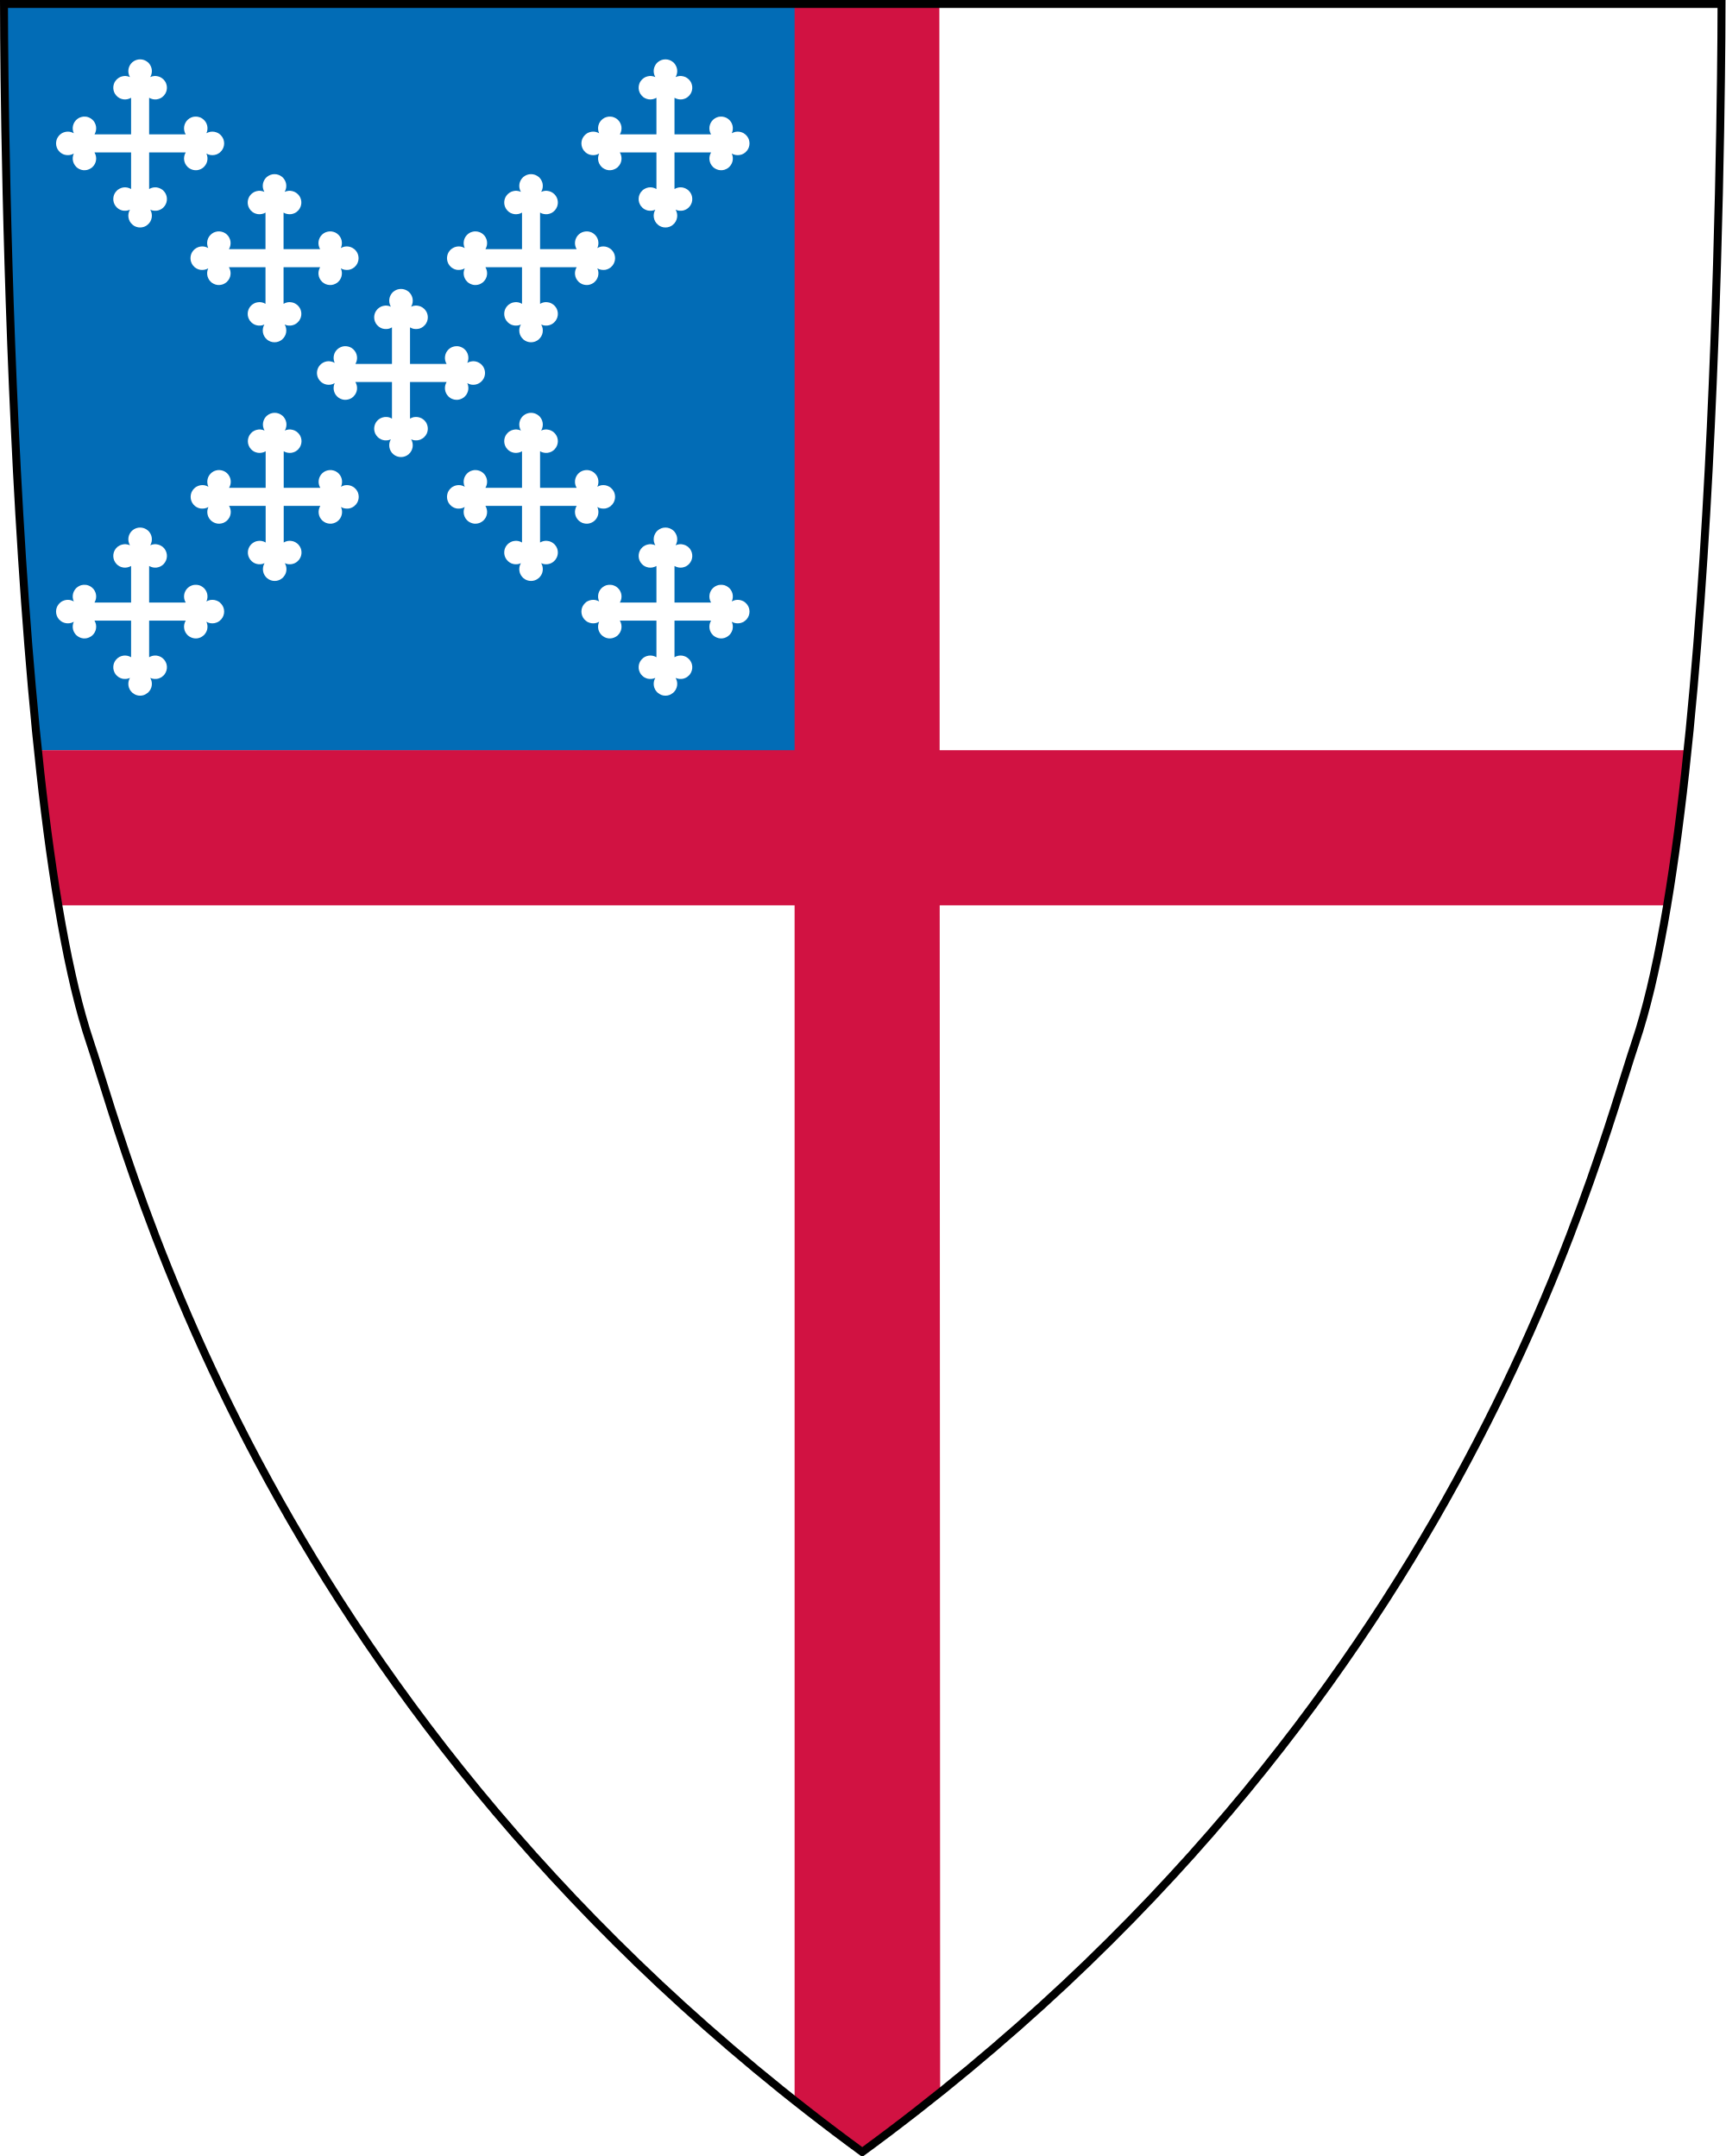 Episcopal shield png. File of the us